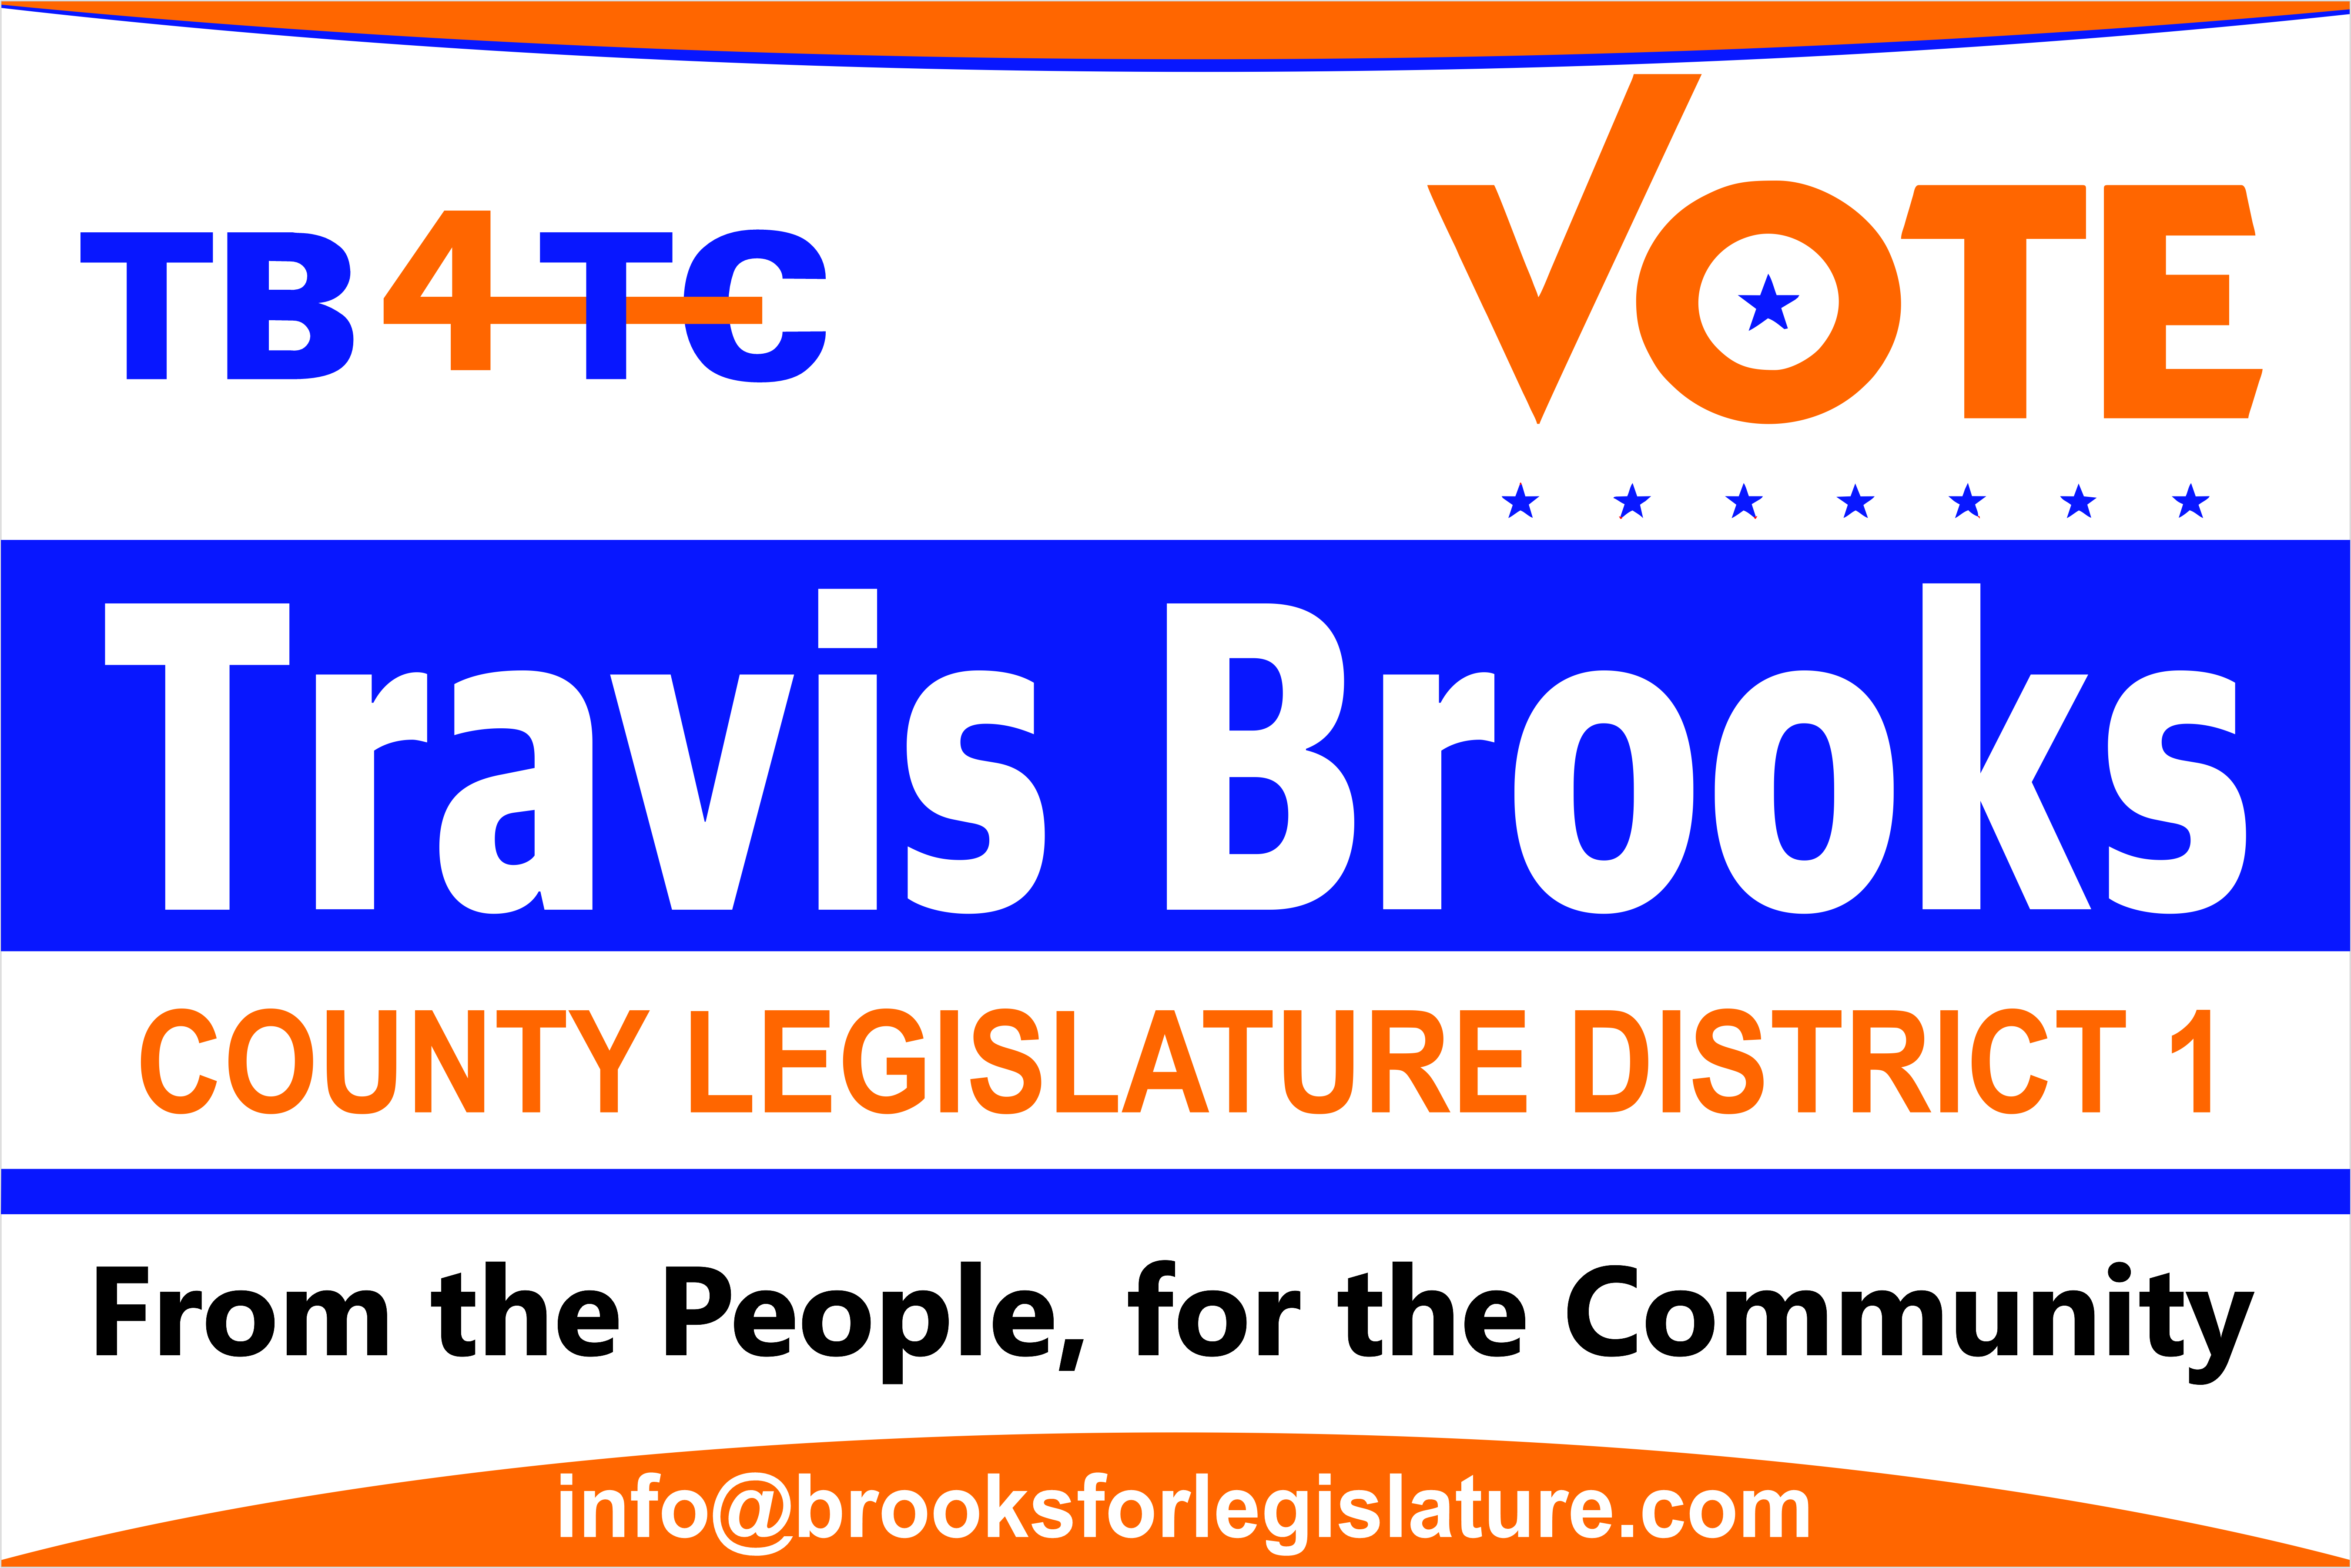 Who wants a yard sign?